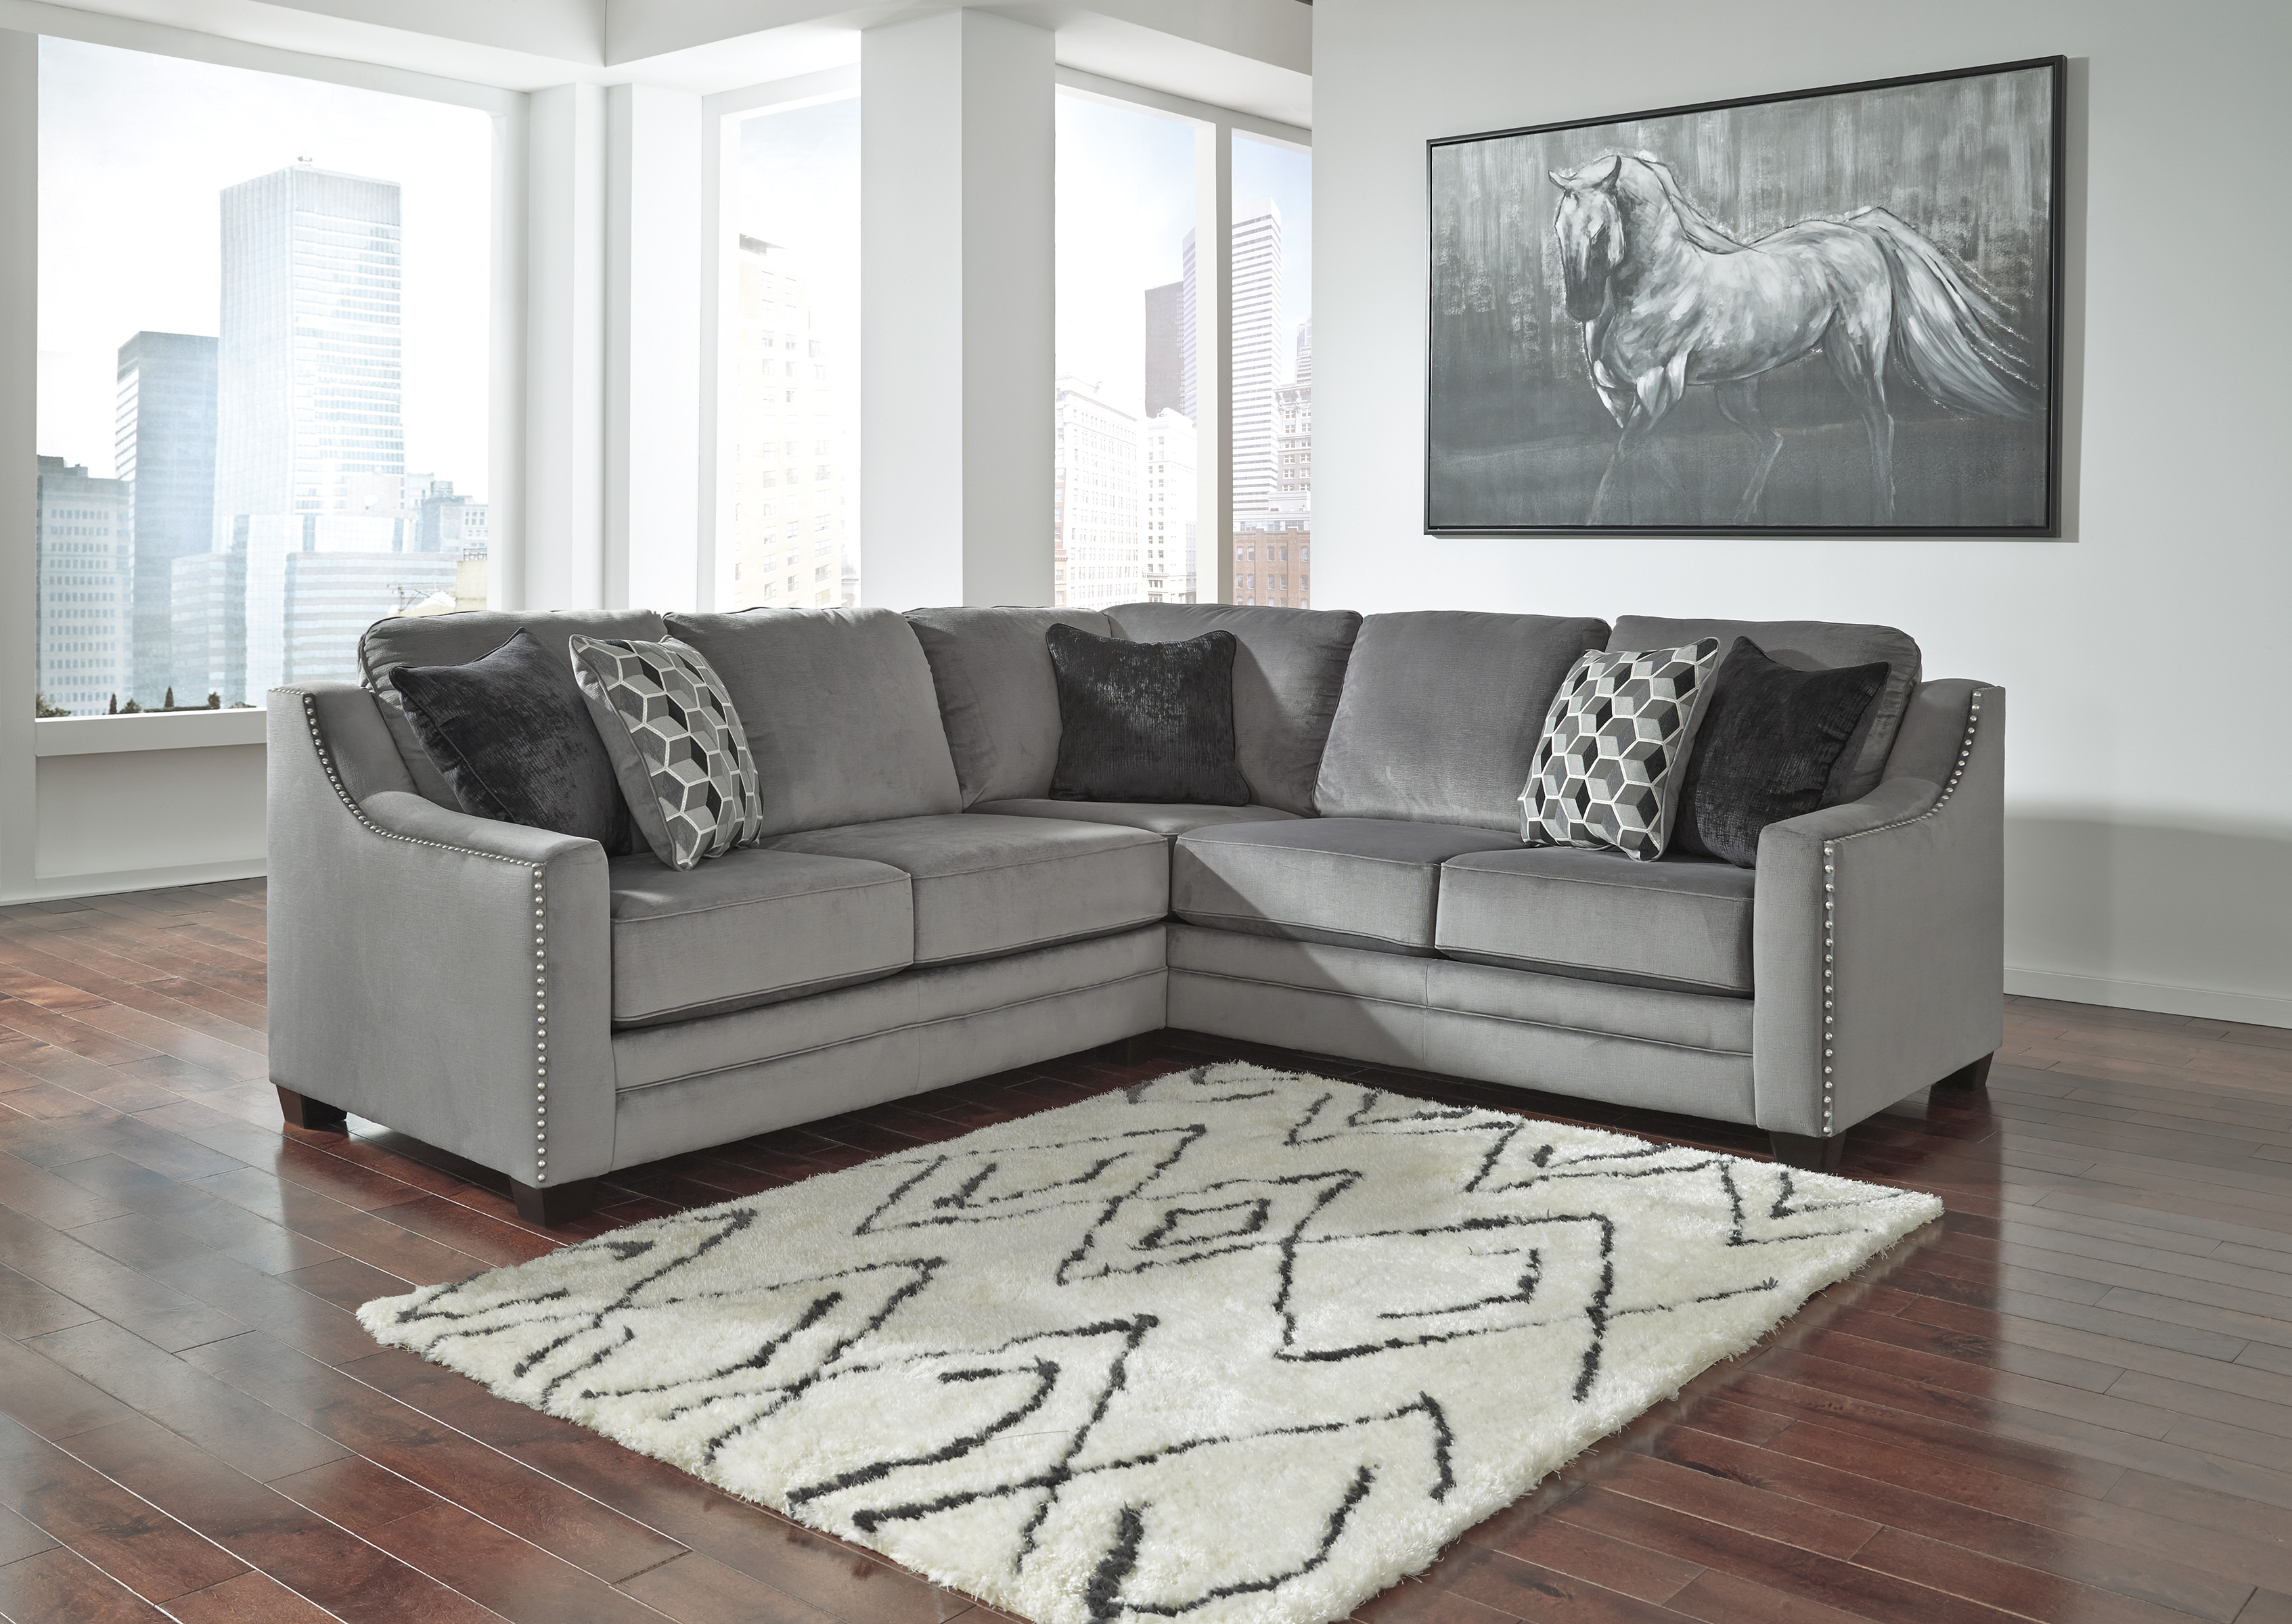 The Bicknell Collection 86204 55 49 2 Pc Sectional Sofa Set Features Corner Wedge Decorative Nail Heads Toss Pillows Loose Seat Cushions And Fabric